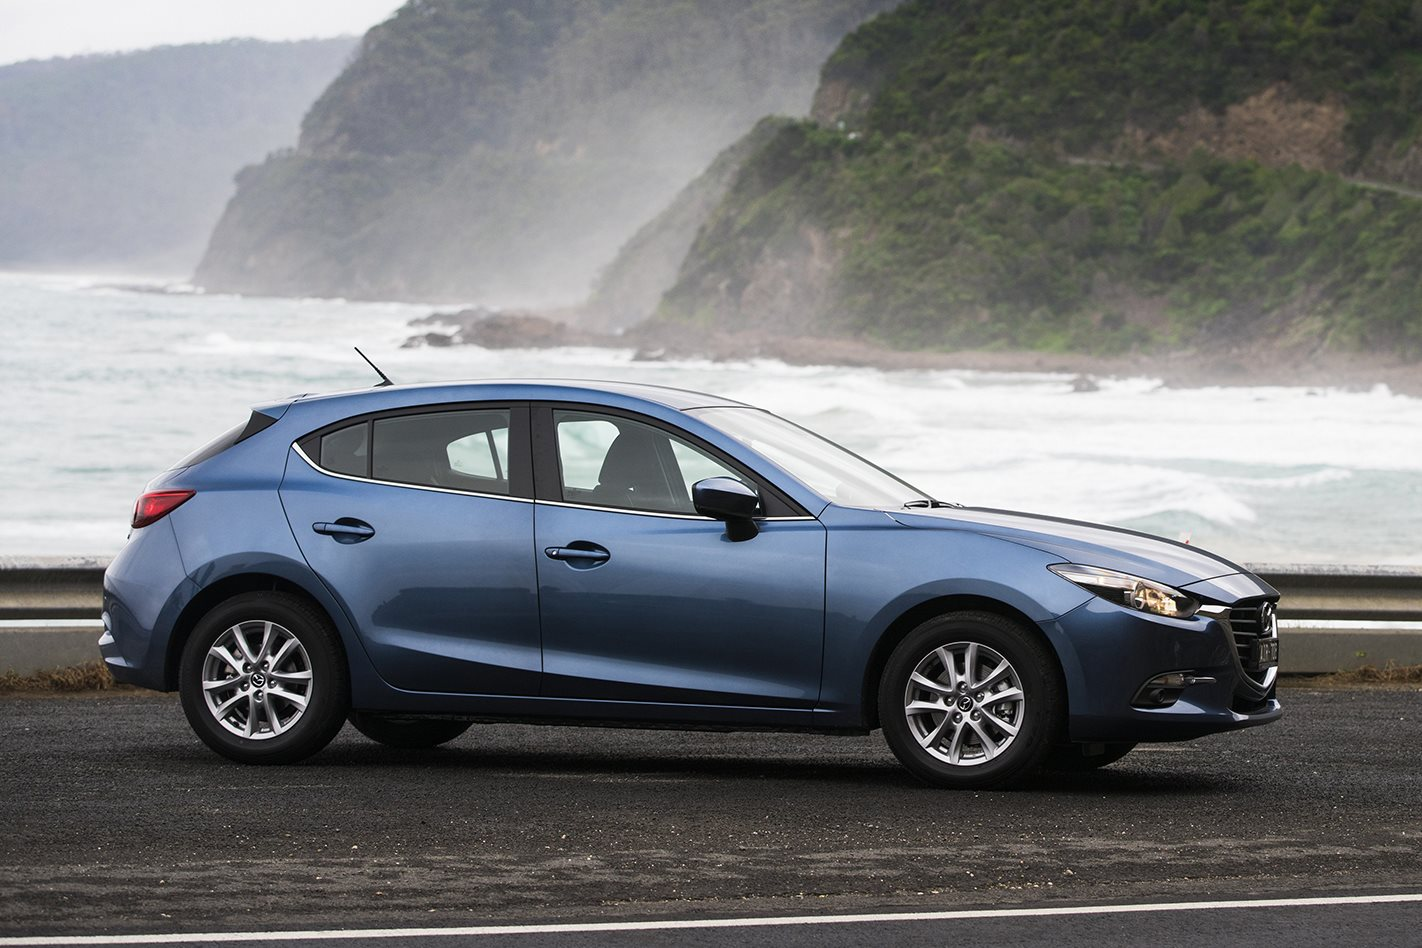 you civic head epa honda how drive vehicle based to depending will mileage on vary ratings your specific mazda autonation maintain trim hatchback vs and